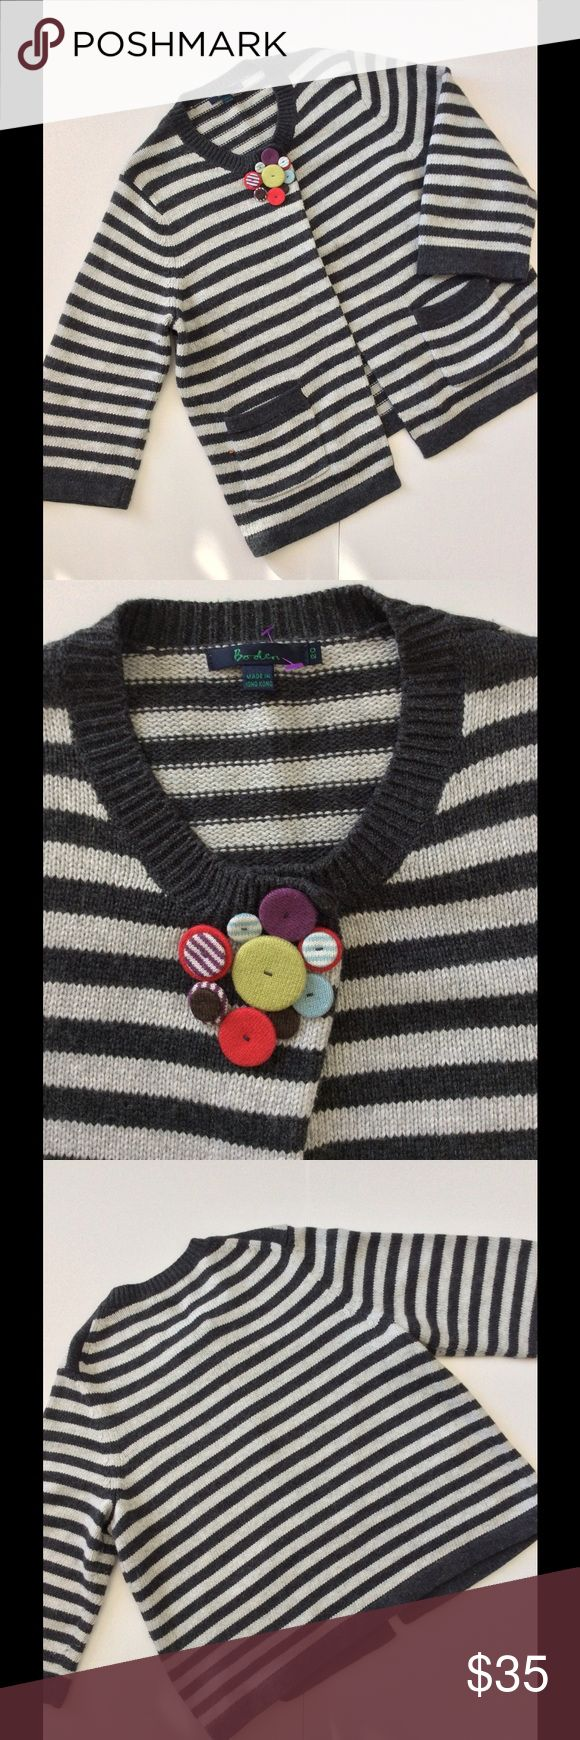 "🆕Listing Boden Sweater US Sz 14-16; UK Sz 20 Soft charcoal and light grey accented with colorful colored buttons over the snap closure. Two front pockets. Bracelet sleeves. Gently worn. Mild pilling in a couple spots. No other sign of wear. U.K. Size 20 fits US 14-16 or XL. This style has a lot of give in sizing with single snap closure at the neckline. 23.5"" armpit to armpit length 25"" from shoulder. Sleeve length 20"" 🎀Bundle discount  ⭐️5 star rated Suggested User 🚭Smoke free home 🚫No…"